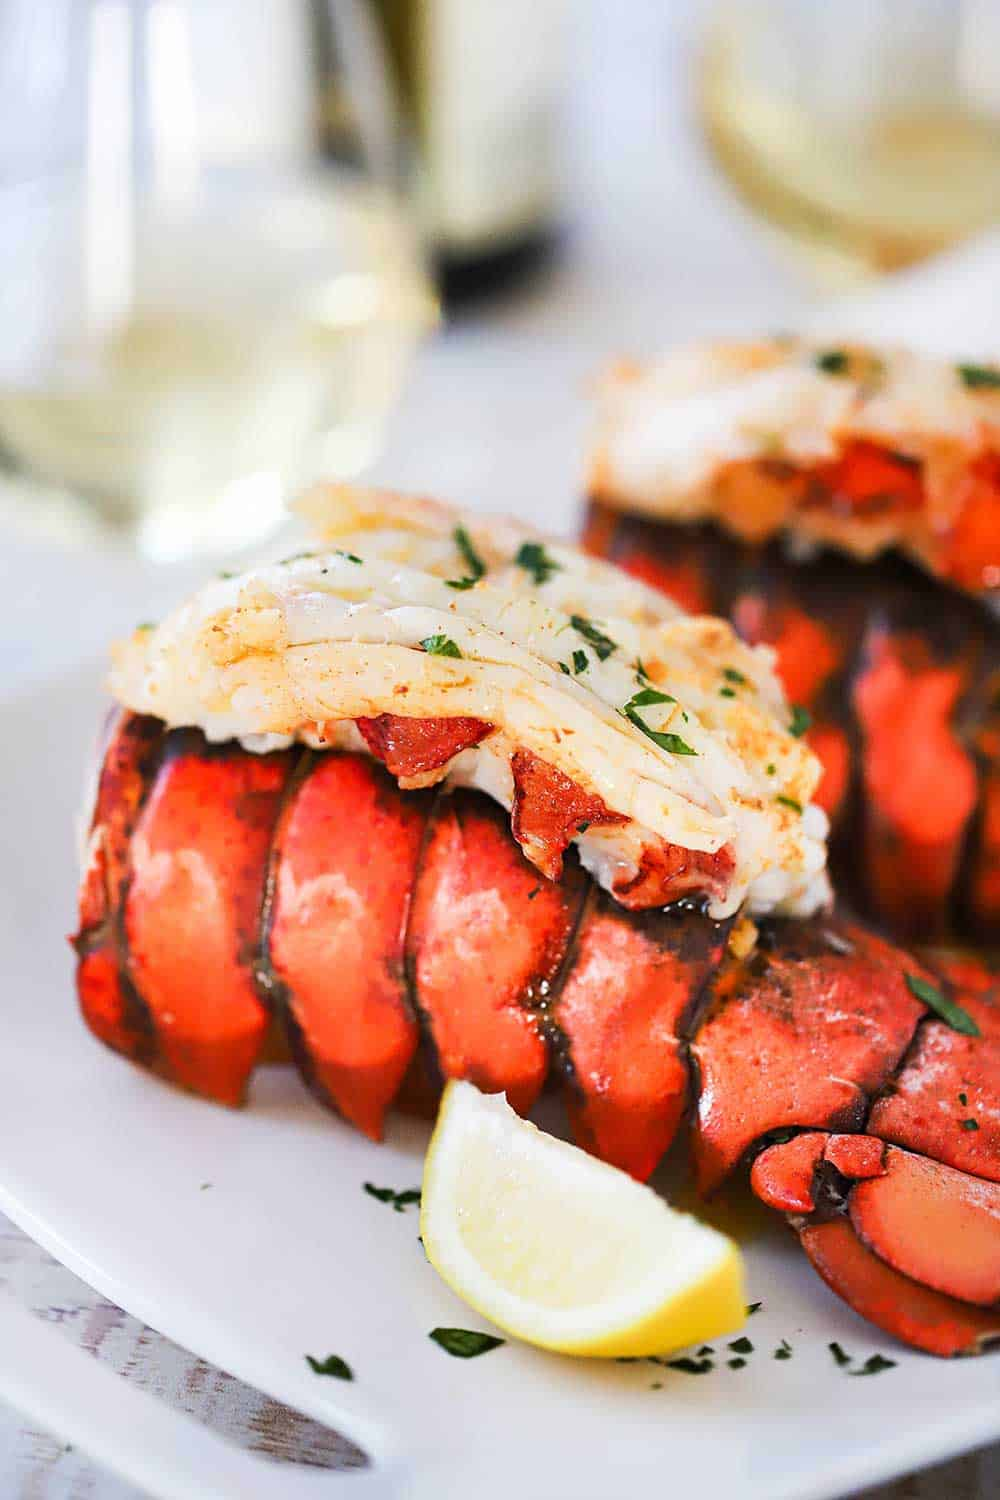 An 8 oz. fully cooked lobster tail with the meat sitting on top of the tail all on a white dinner plate with a lemon wedge.